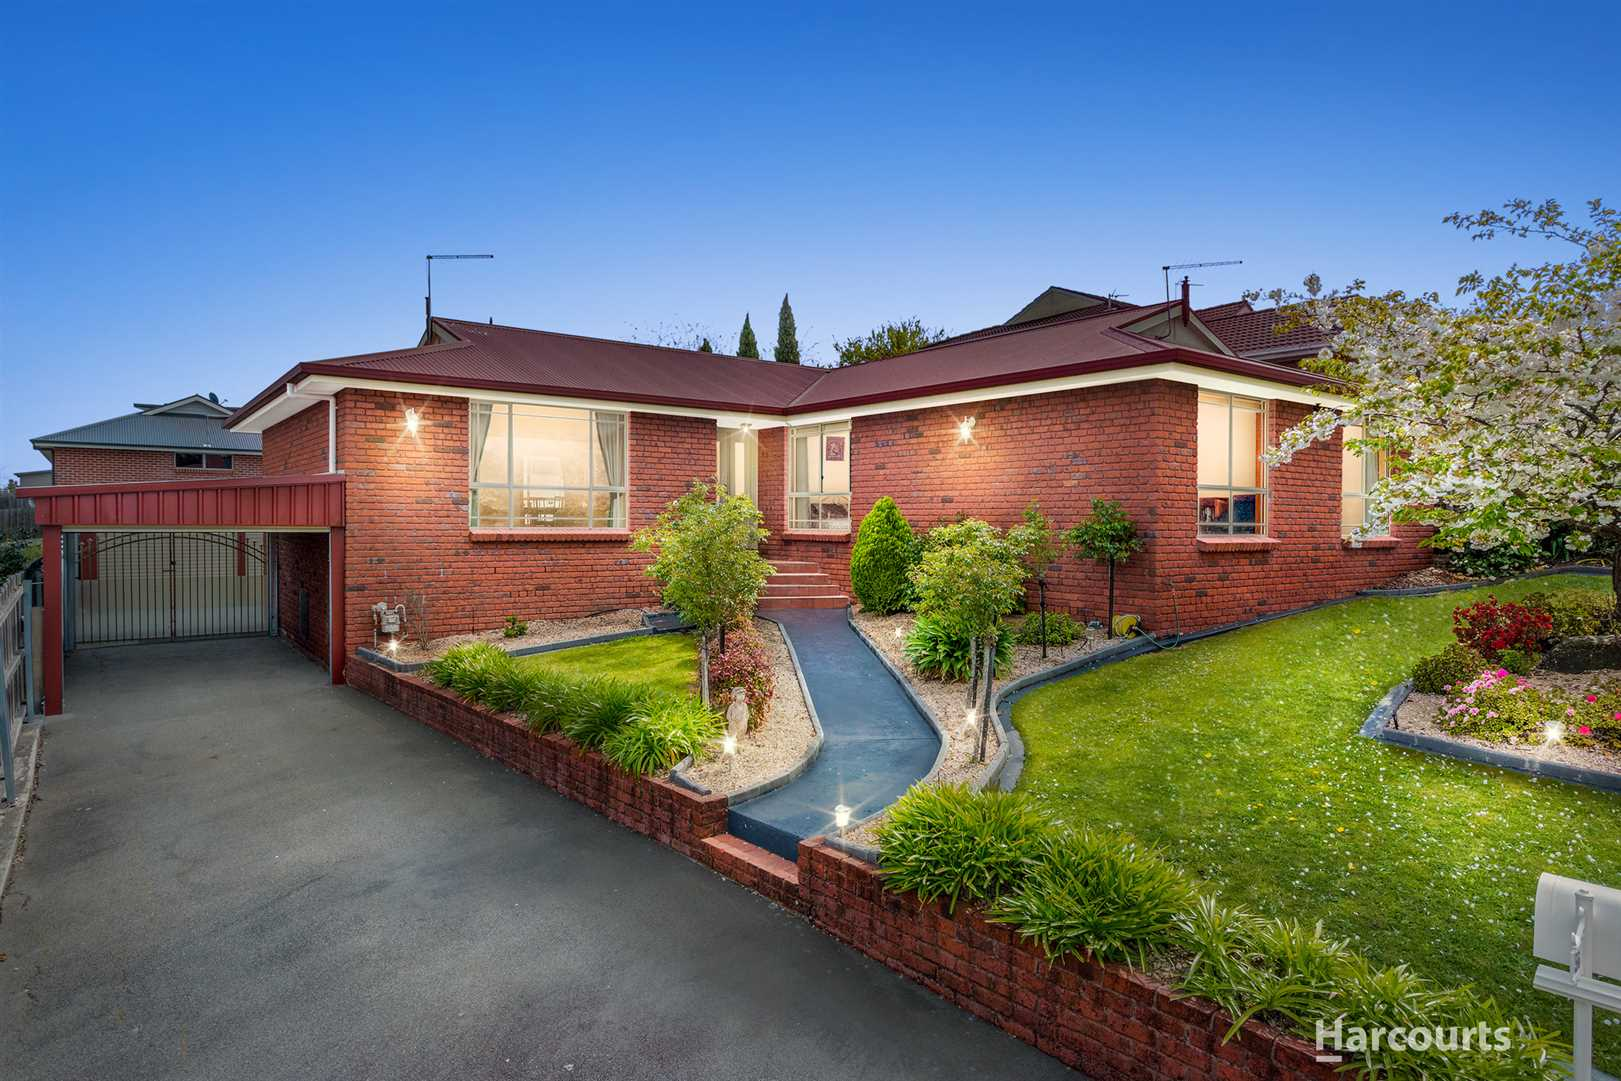 Open Home: Sat 20th Oct 1.00 - 1.30